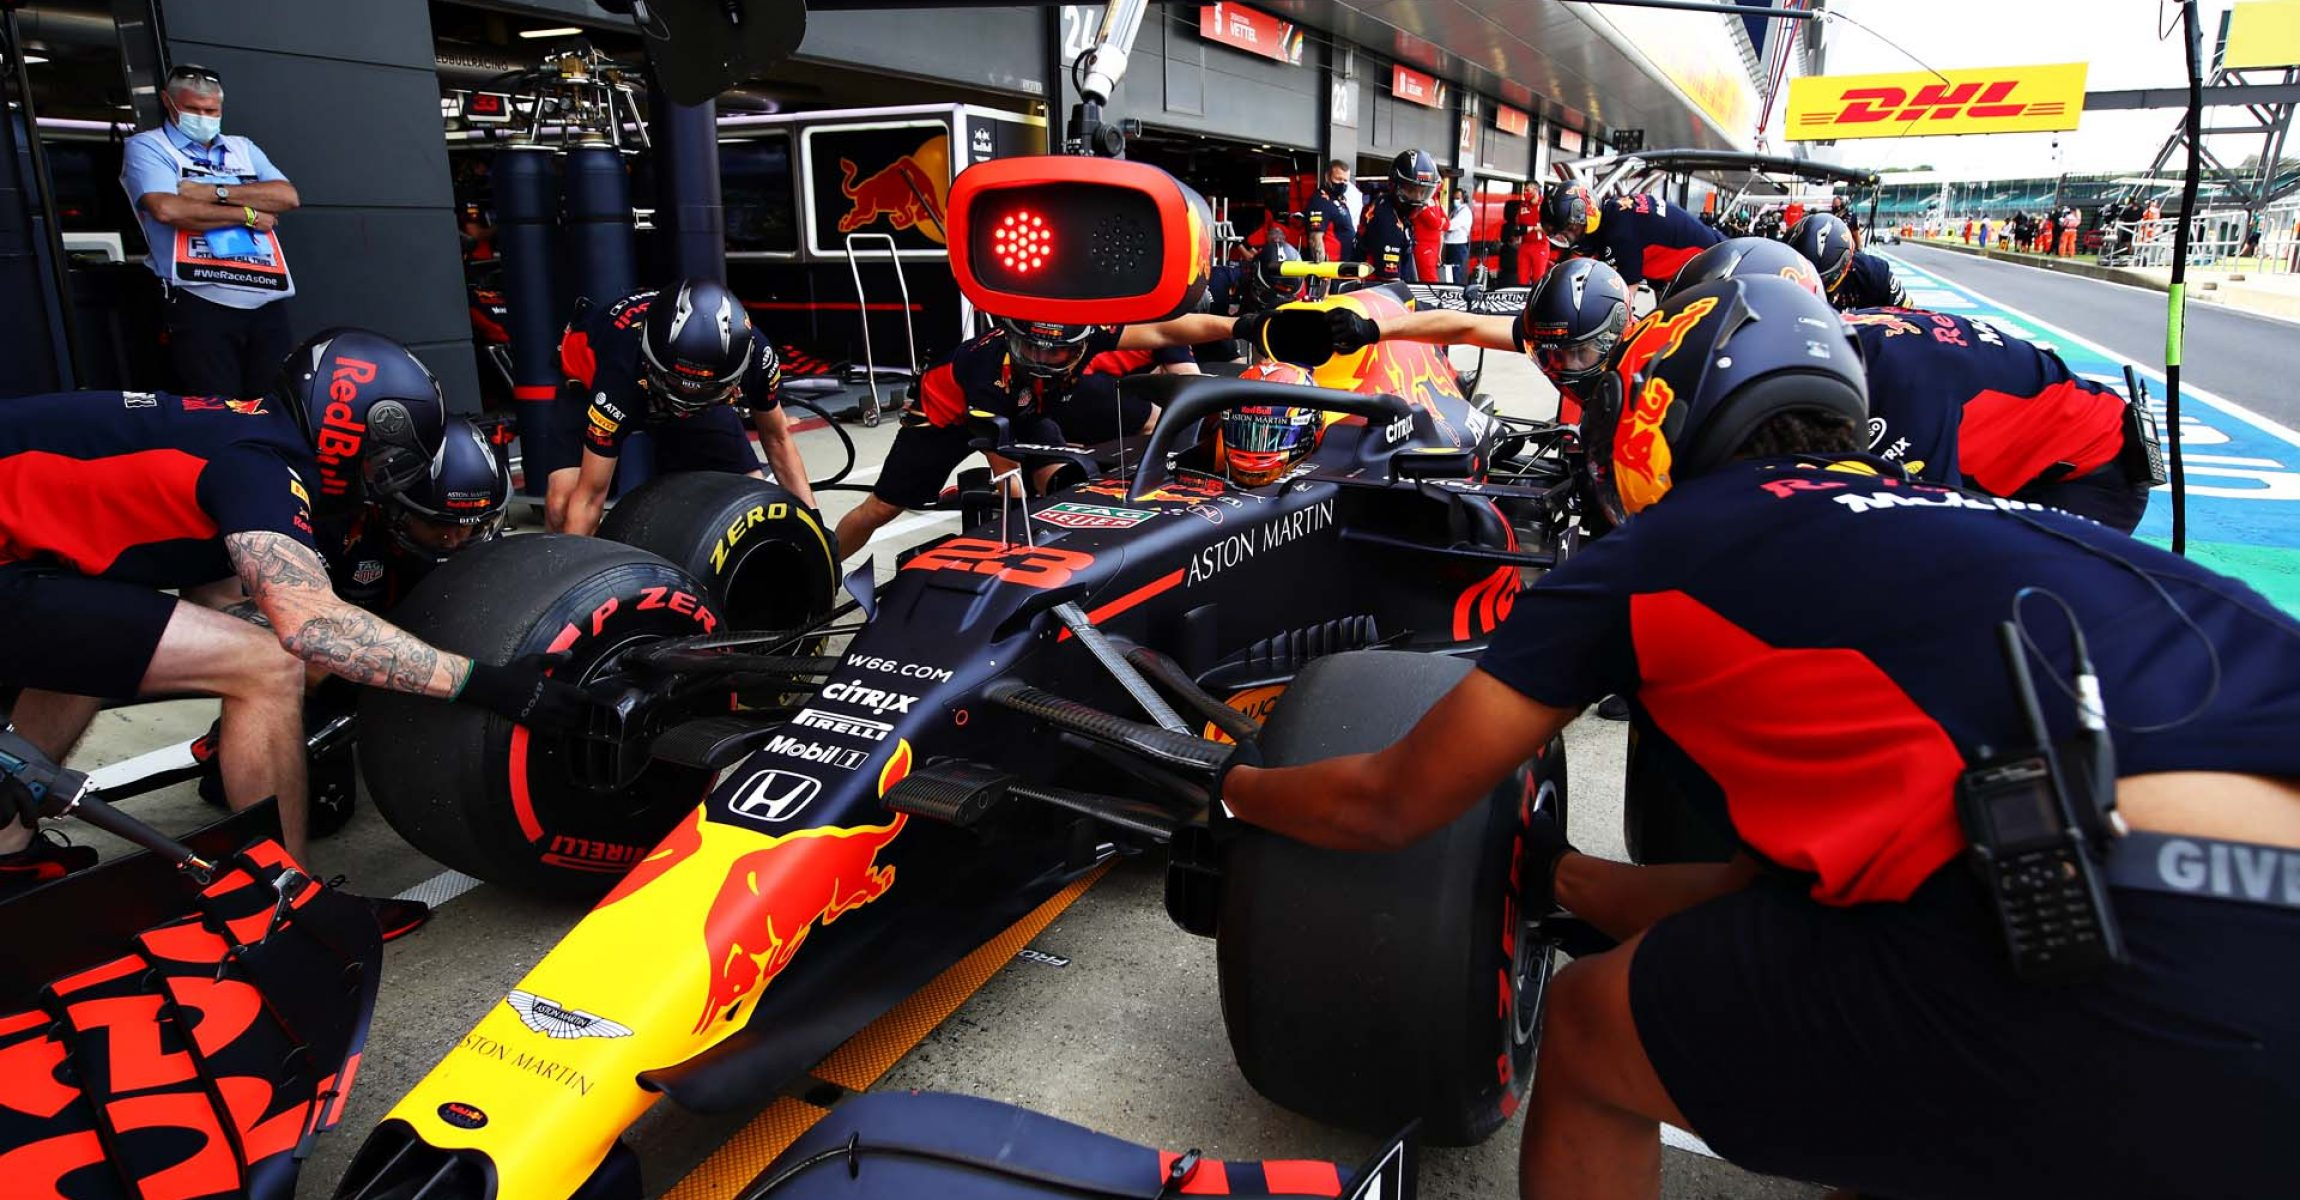 NORTHAMPTON, ENGLAND - AUGUST 01: Alexander Albon of Thailand driving the (23) Aston Martin Red Bull Racing RB16 stops in the Pitlane during final practice for the F1 Grand Prix of Great Britain at Silverstone on August 01, 2020 in Northampton, England. (Photo by Mark Thompson/Getty Images)